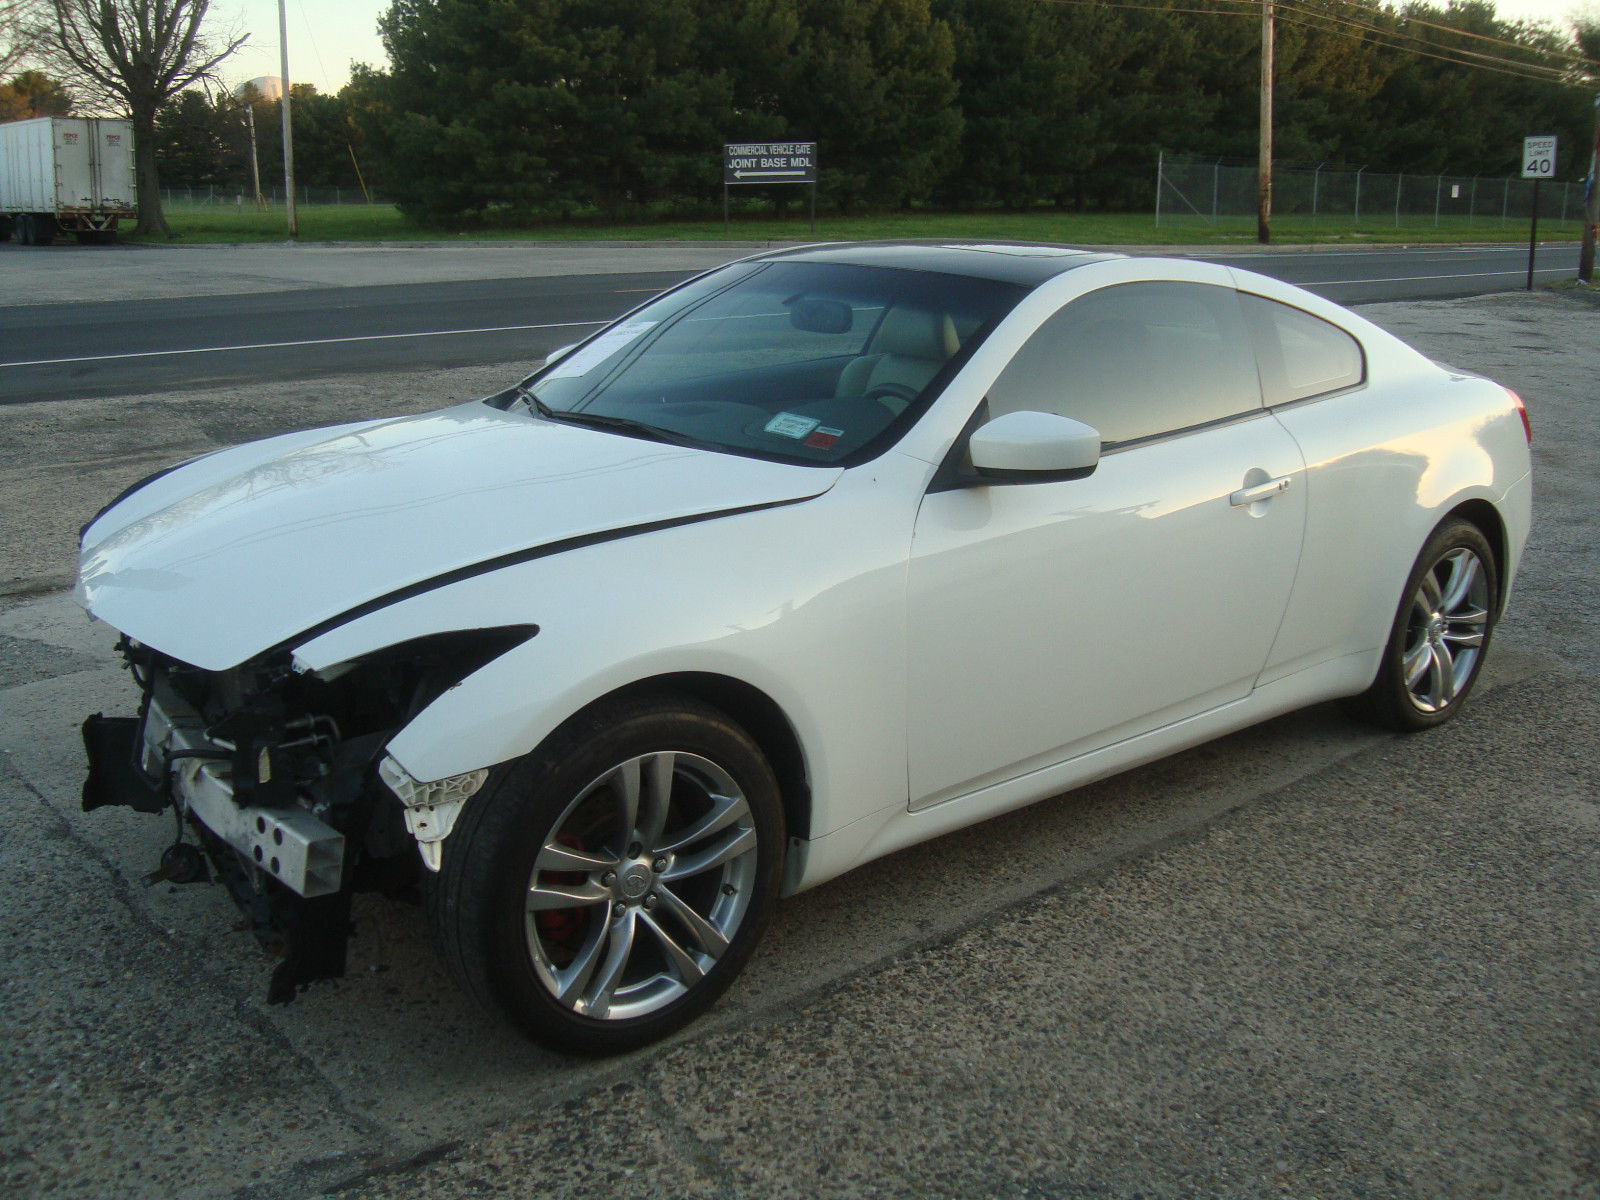 2009 infiniti g37 awd salvage rebuildable for sale. Black Bedroom Furniture Sets. Home Design Ideas